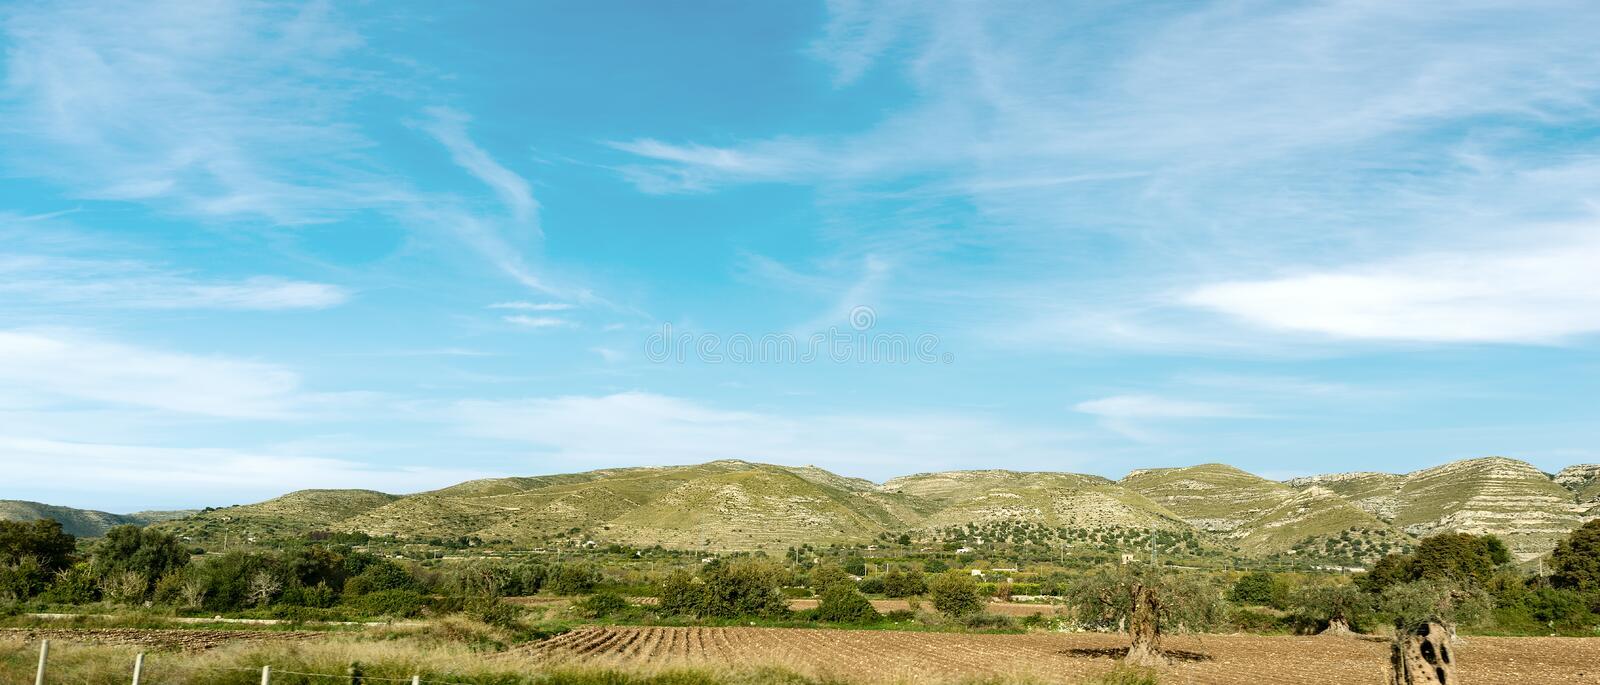 Typical Hills of the Sicily near Siracusa Italy. Typical hills of Sicily island near Syracuse Siracusa, Italy, Europe royalty free stock photos